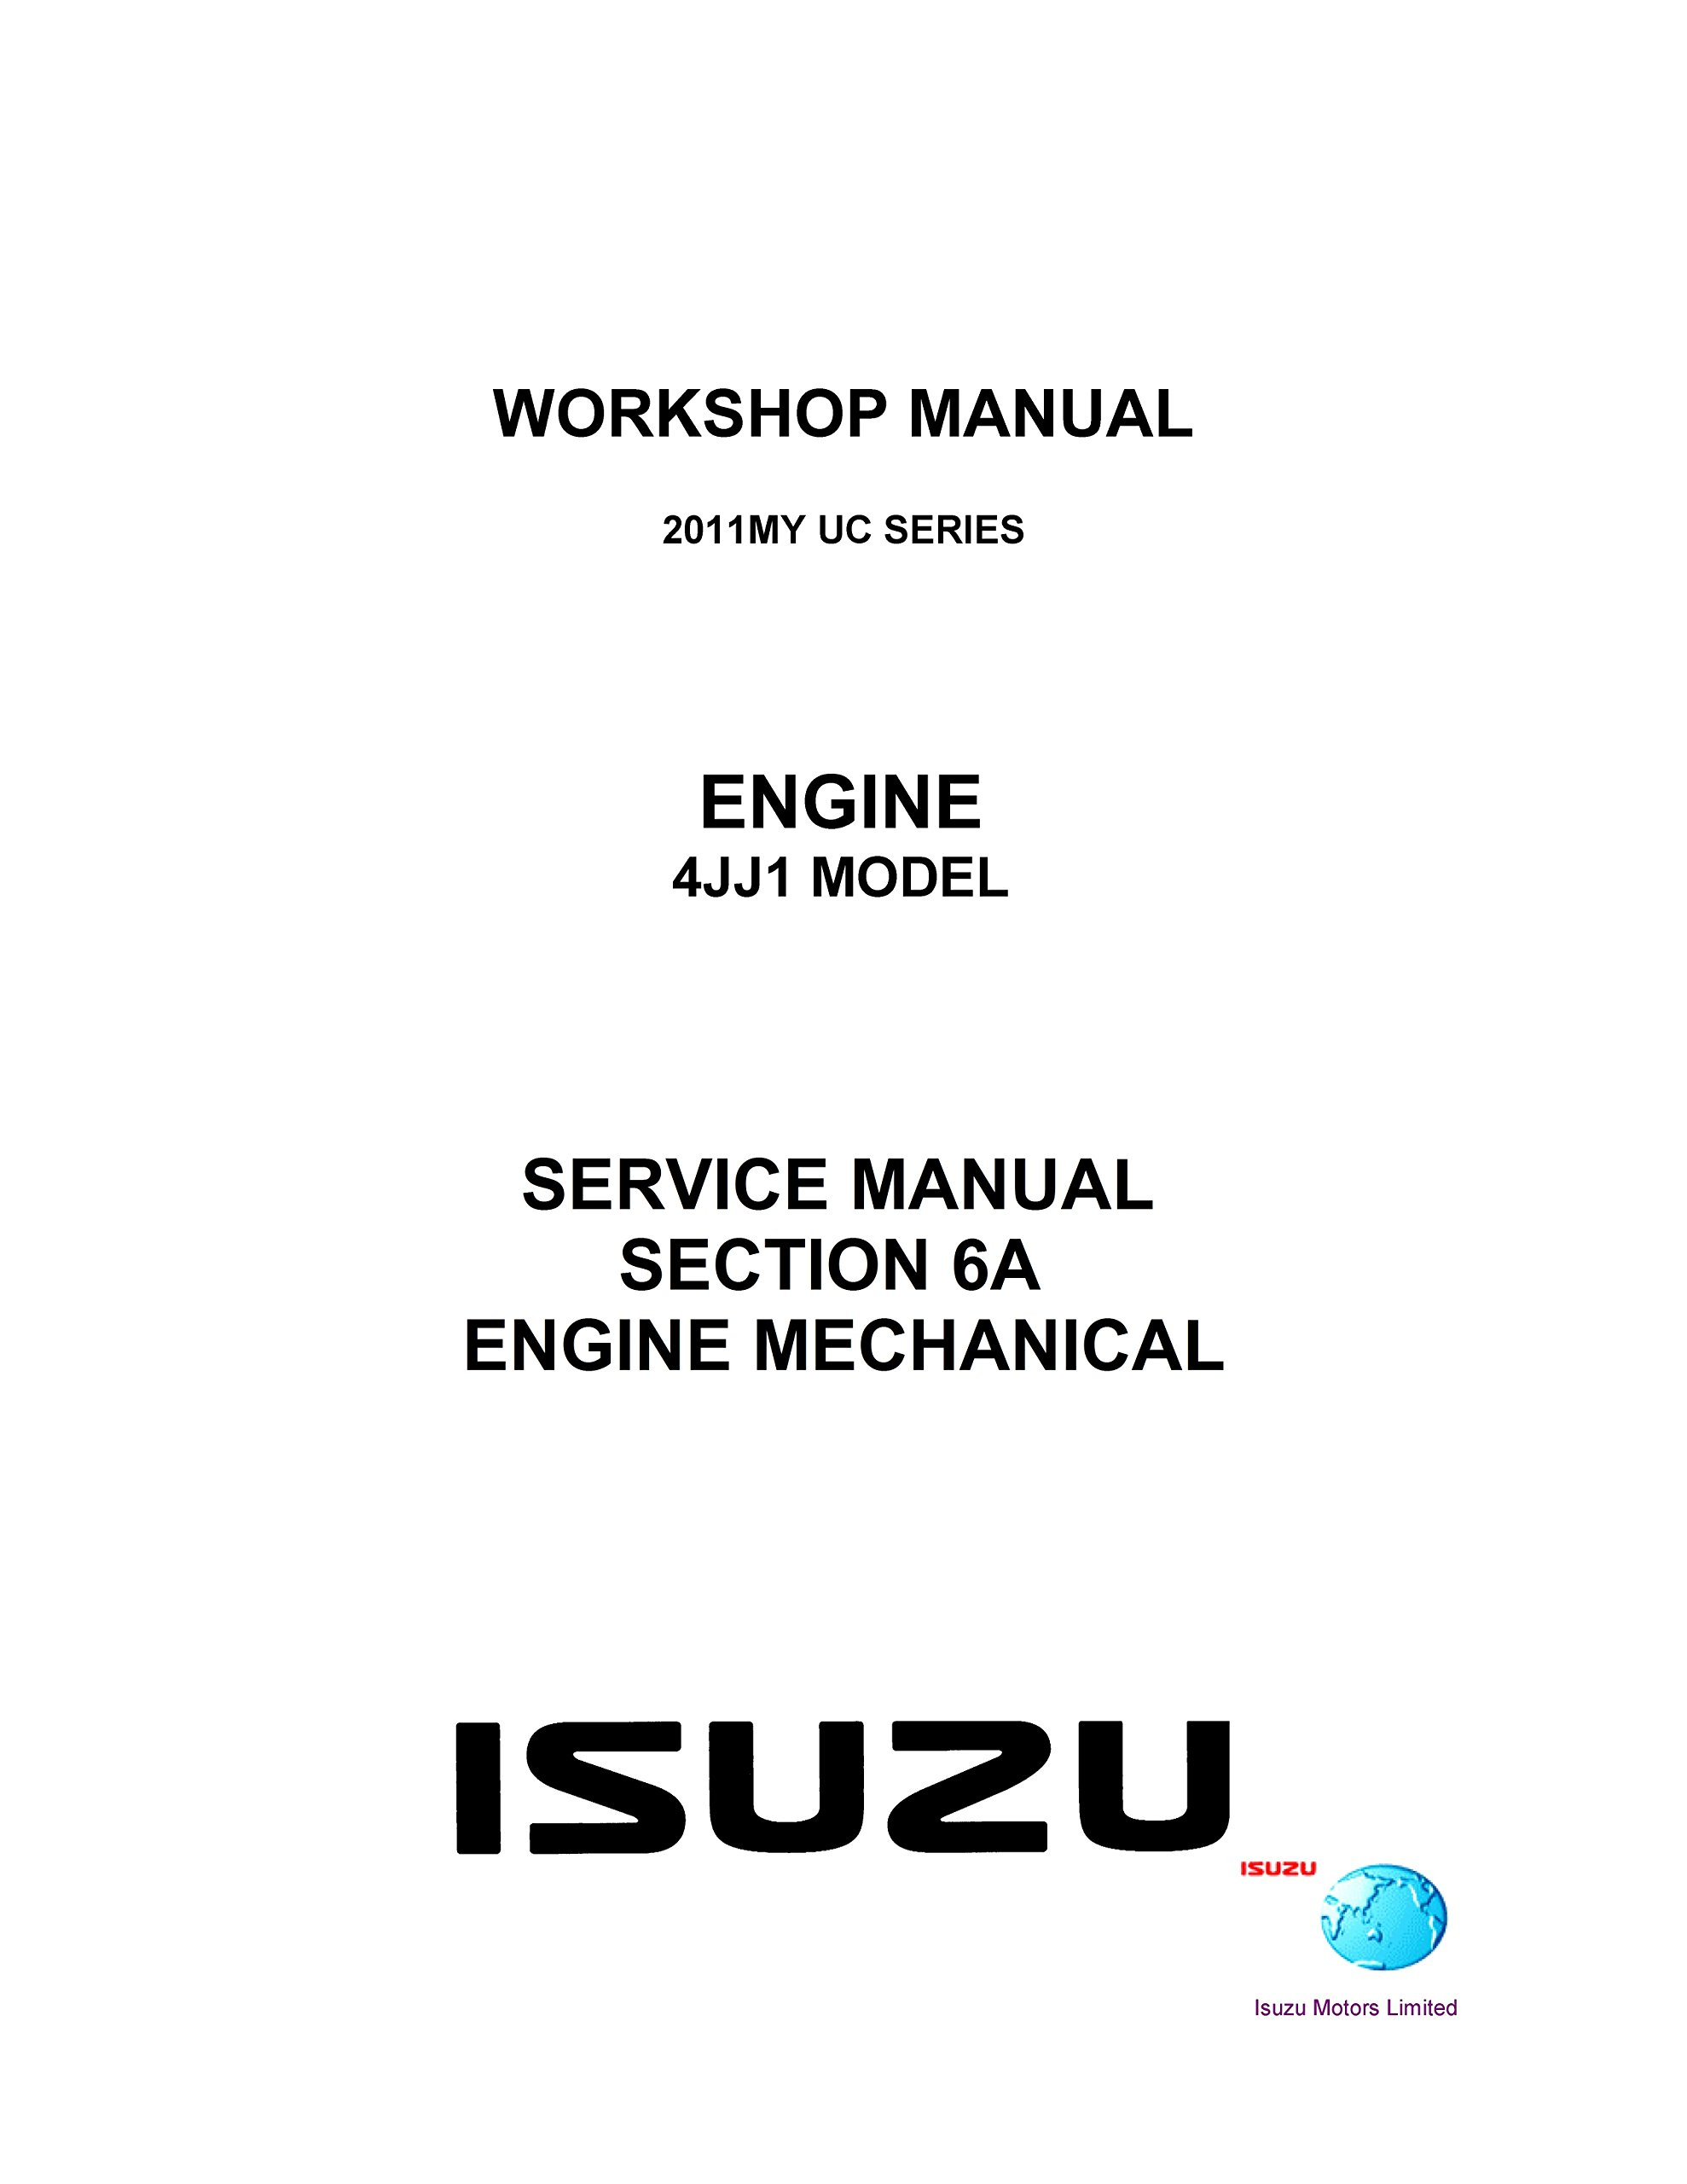 isuzu 4jj1 workshop manual ebook